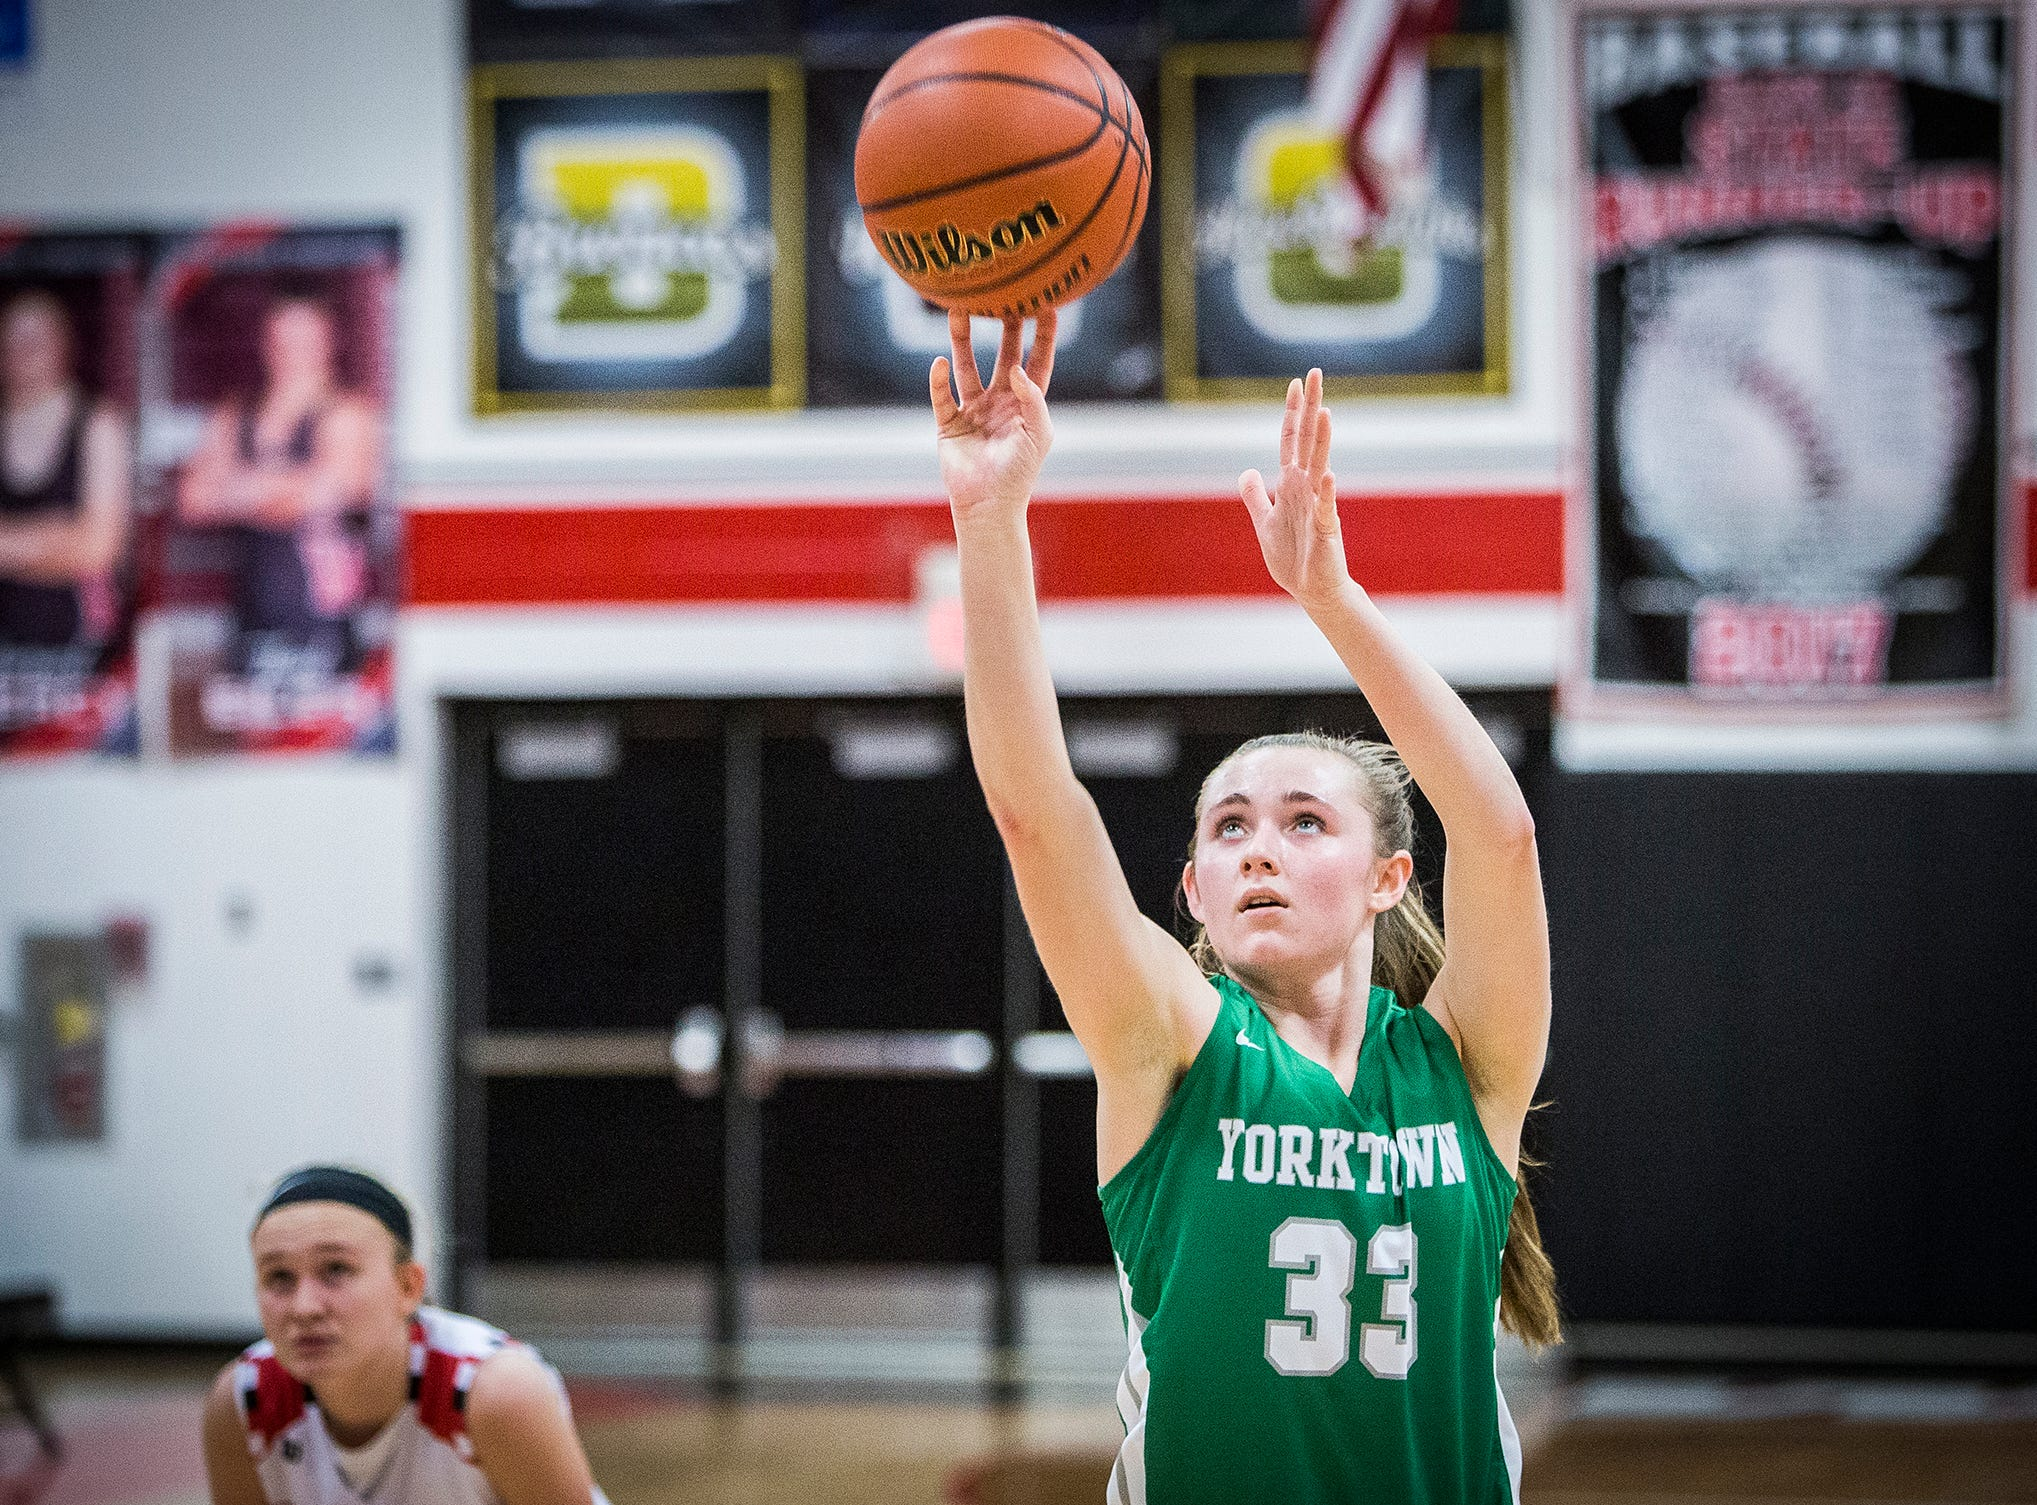 Yorktown's Tobi Bell shoots a free throw during their game against Wapahani at Wapahani High School Tuesday, Dec. 4, 2018.